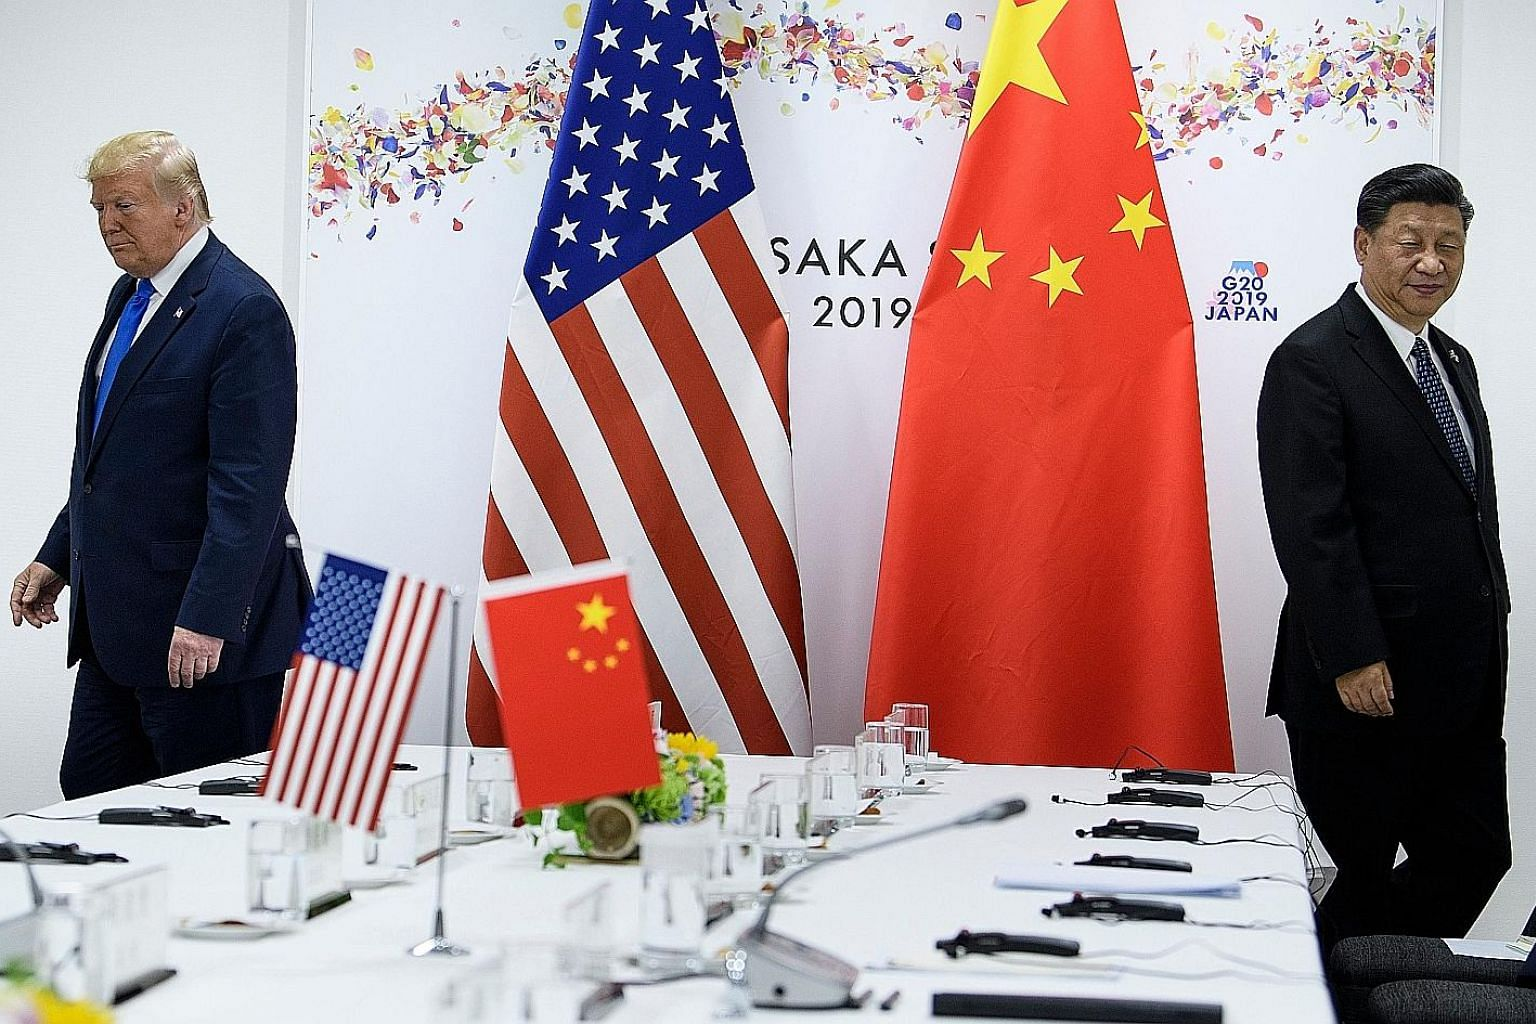 US President Donald Trump and China's President Xi Jinping at the Group of 20 summit in Osaka in June last year. The writer says that the unravelling of the existing world order started with the elections of these two leaders. PHOTO: AGENCE FRANCE-PR